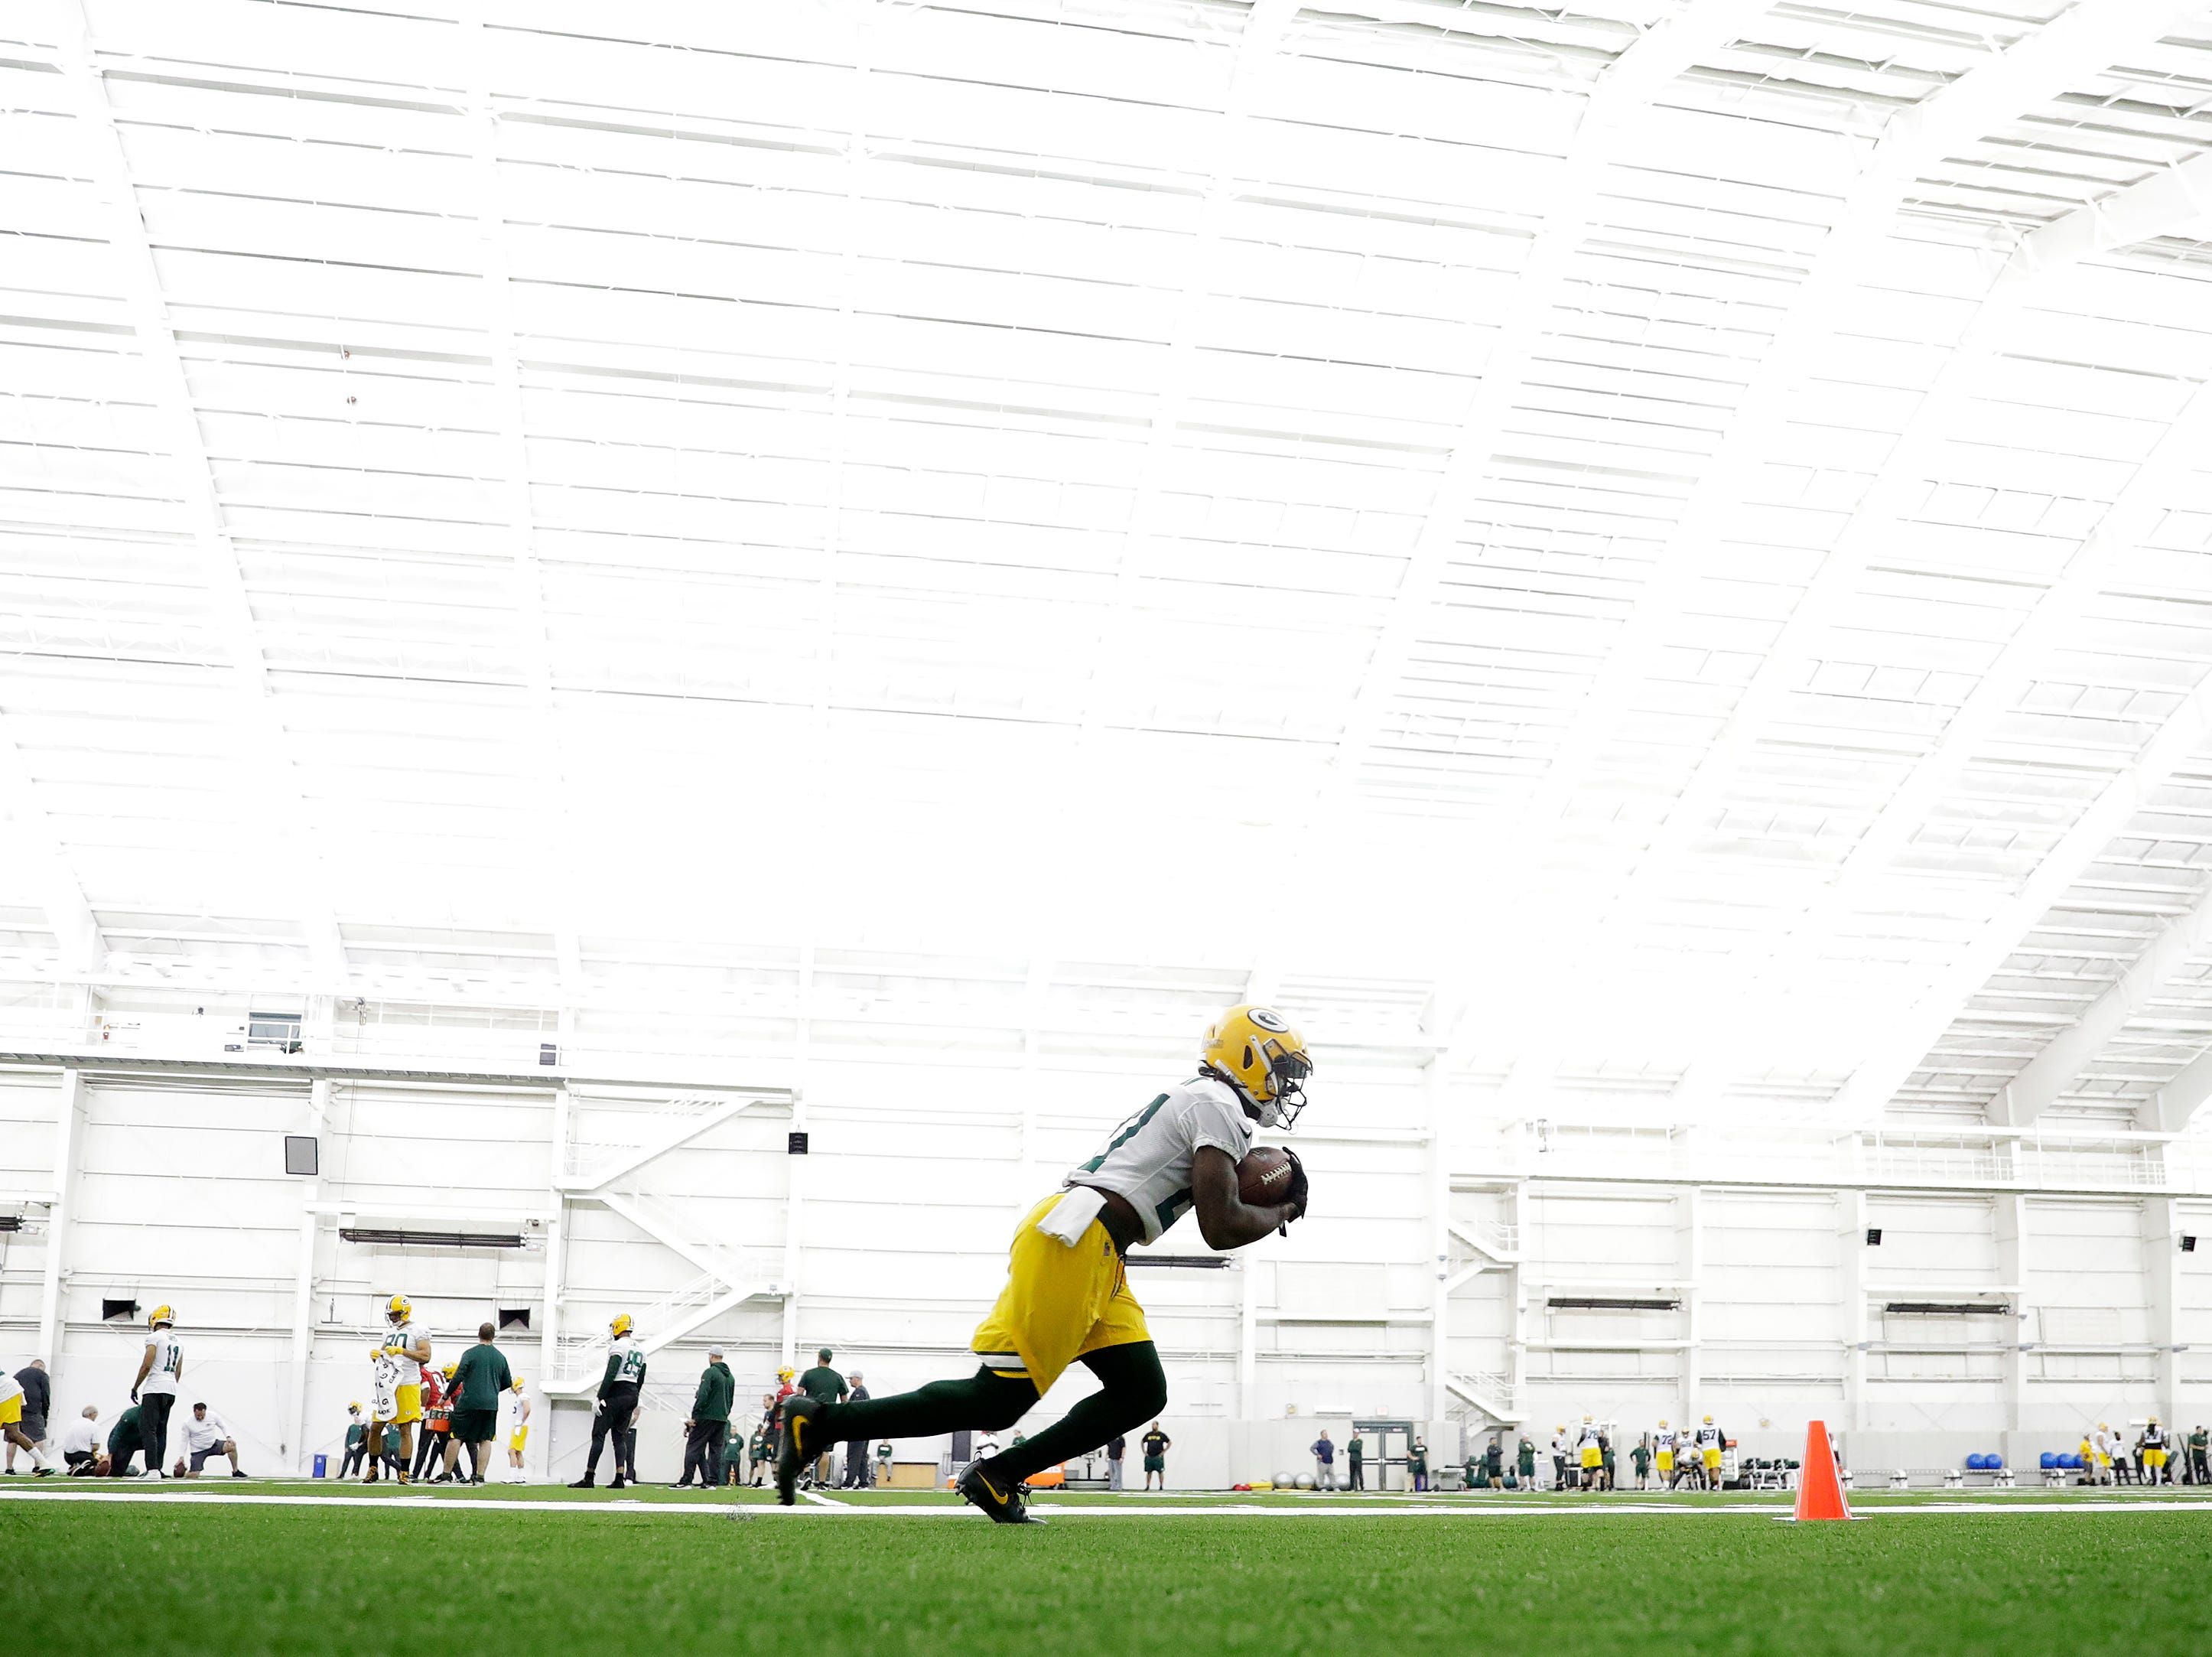 Green Bay Packers running back Lavon Coleman (27) during a team practice at the Don Hutson Center on Wednesday, April 24, 2019 in Ashwaubenon, Wis.